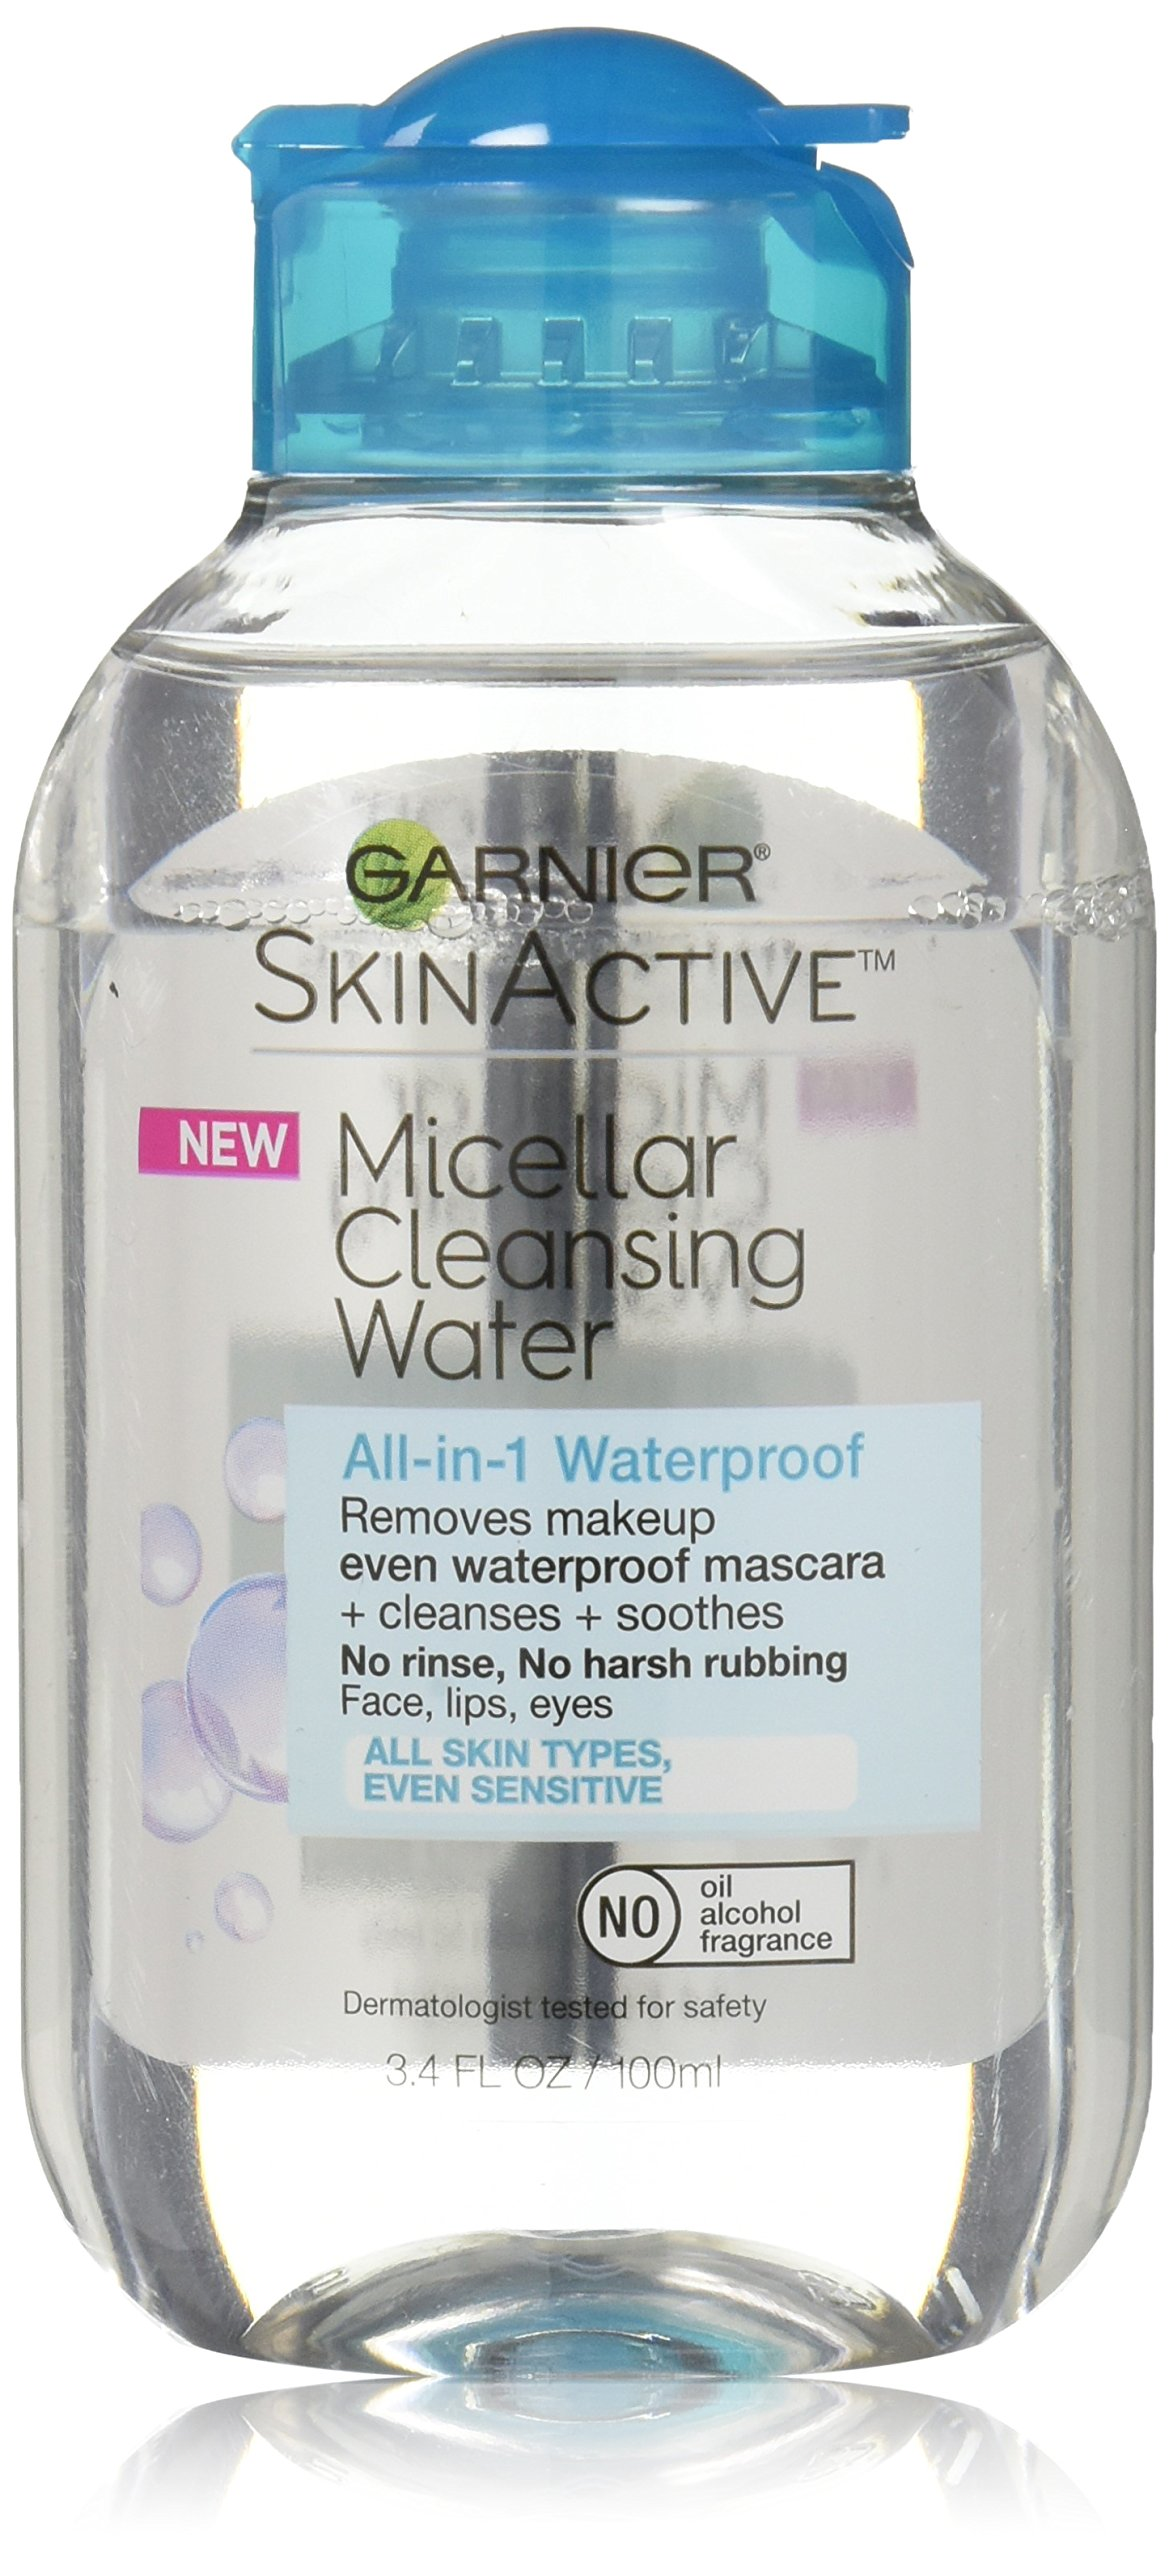 Garnier SkinActive Micellar Cleansing Water, For Waterproof Makeup, 3.4 fl. oz.